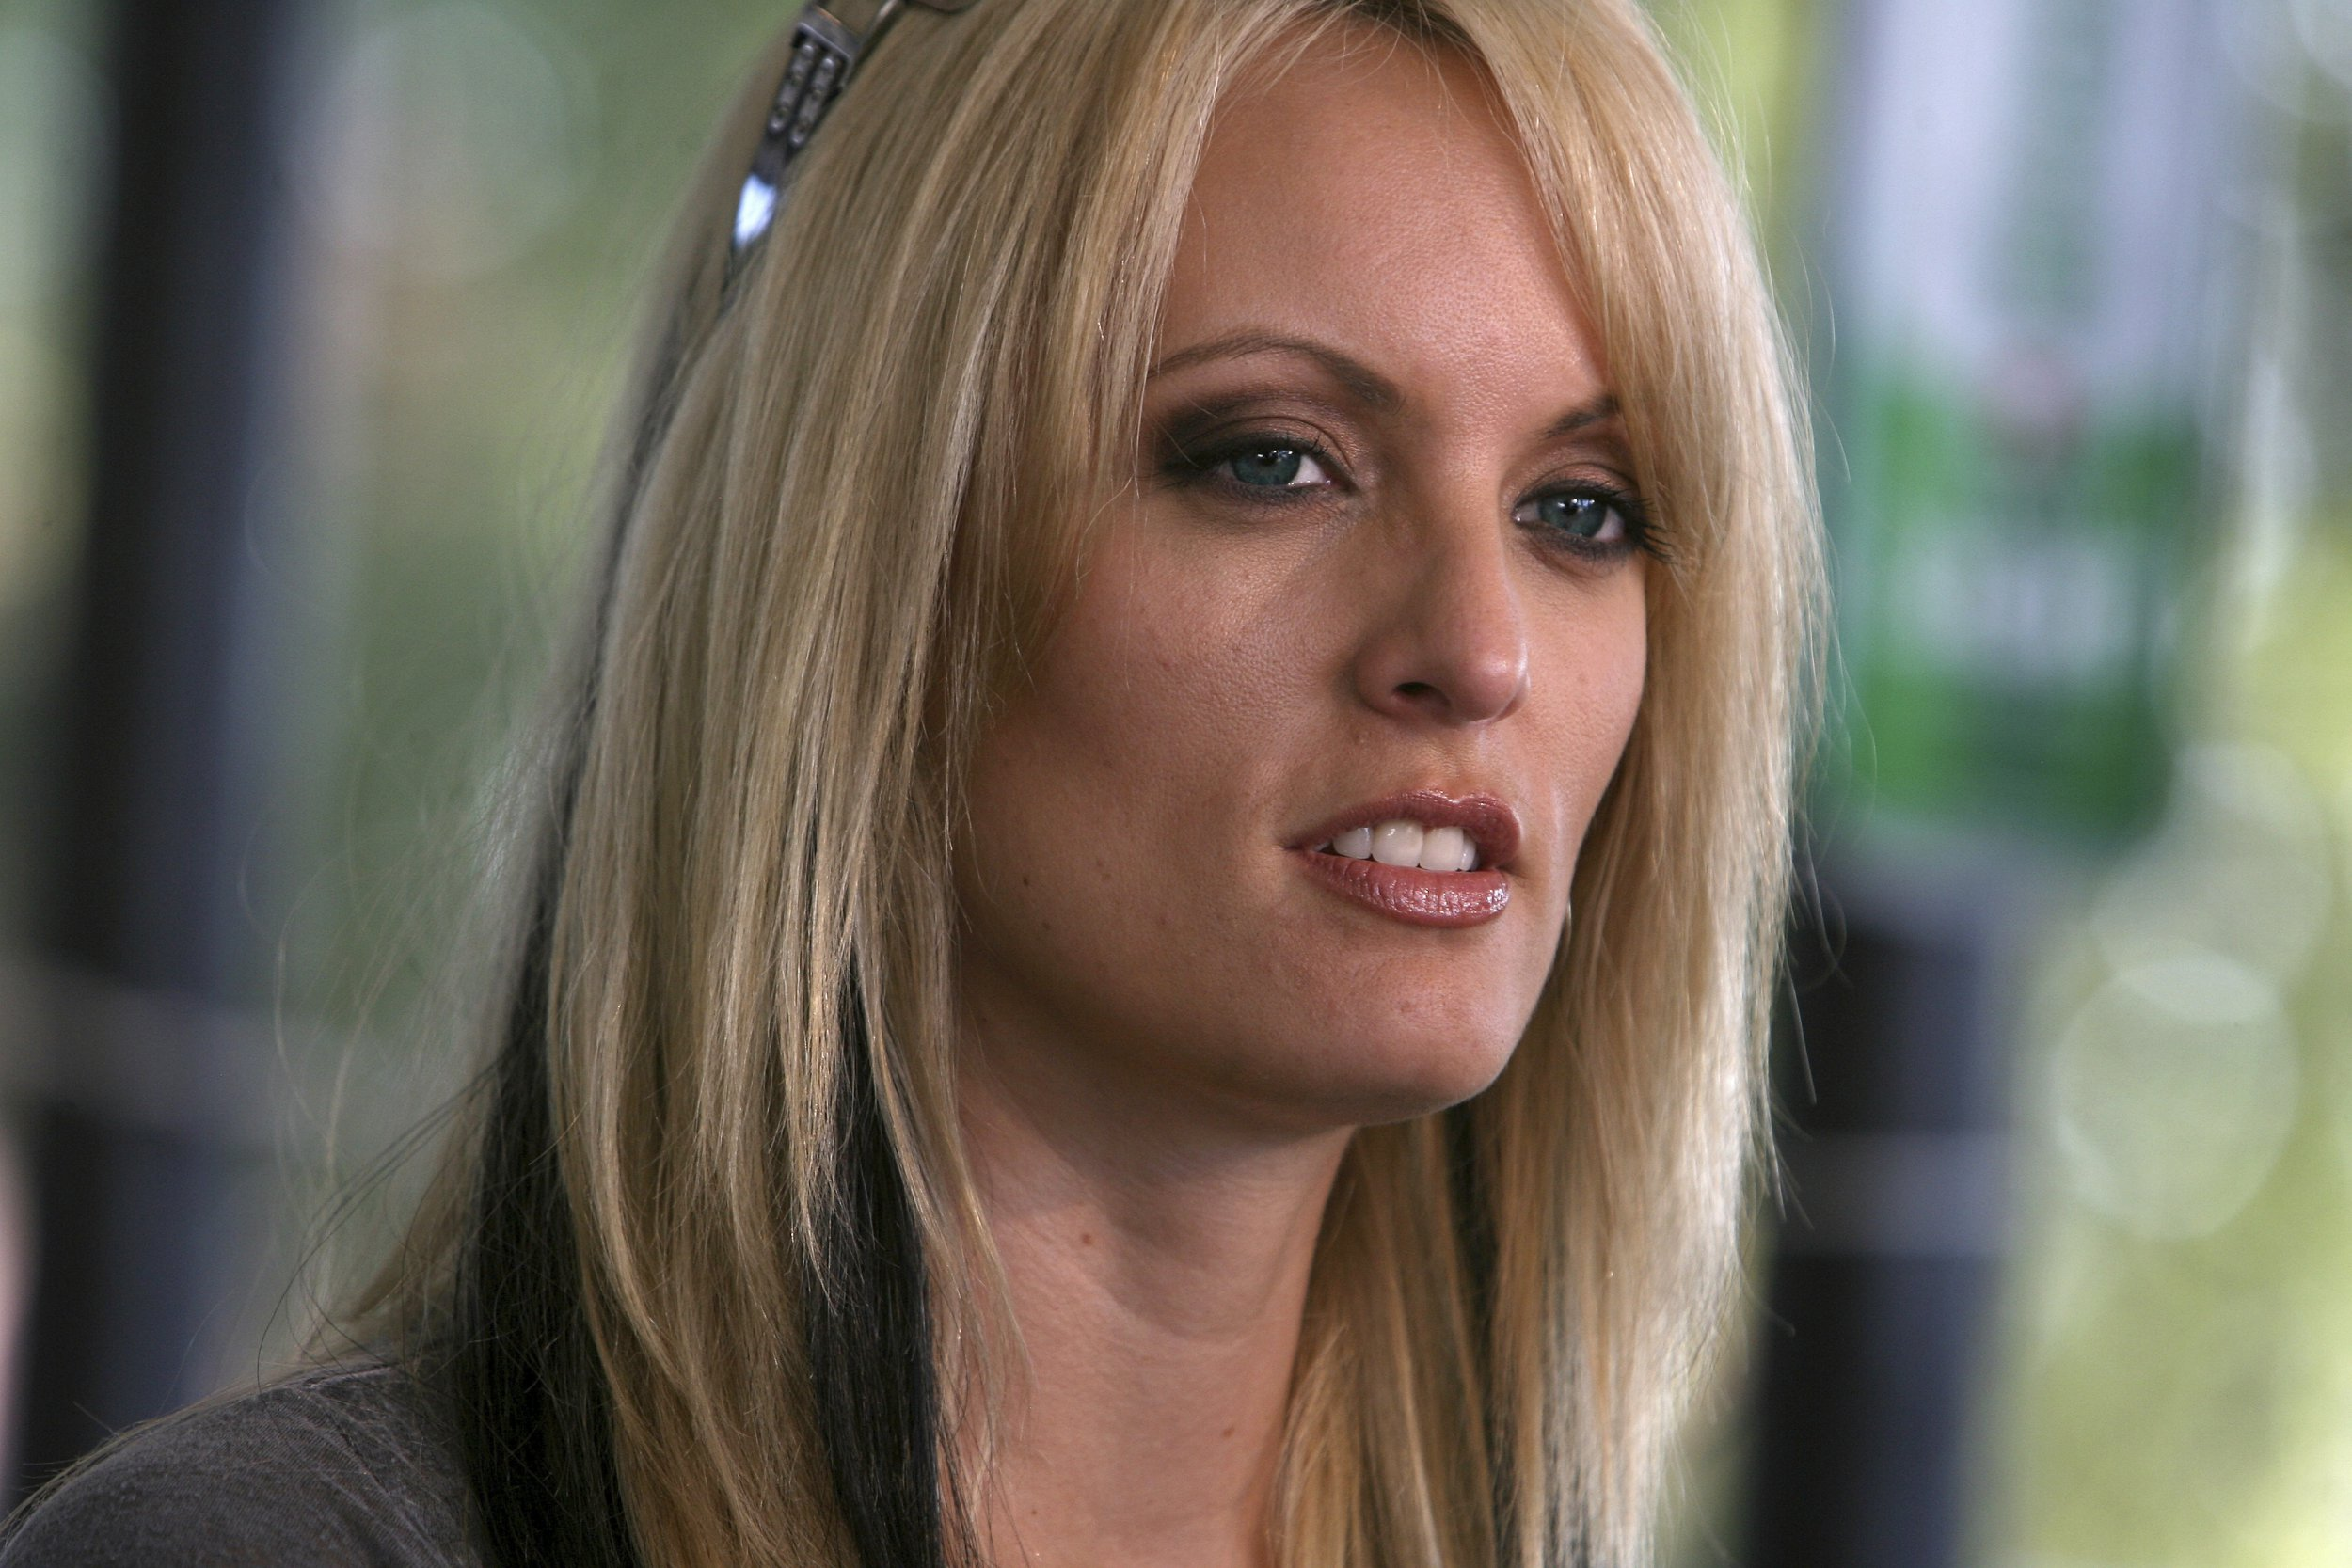 This photo taken July 3, 209, shows Adult-movie star Stormy Danielsat Rooster's Country Bar in Delhi, La., for the last leg of her statewide listening tour. A tabloid magazine held back from publishing Daniels' 2011 account of an alleged affair with Donald Trump after the future president's personal lawyer threatened to sue, four former employees of the tabloid's publisher told The Associated Press. (Arely D. Castillo/The News-Star via AP)